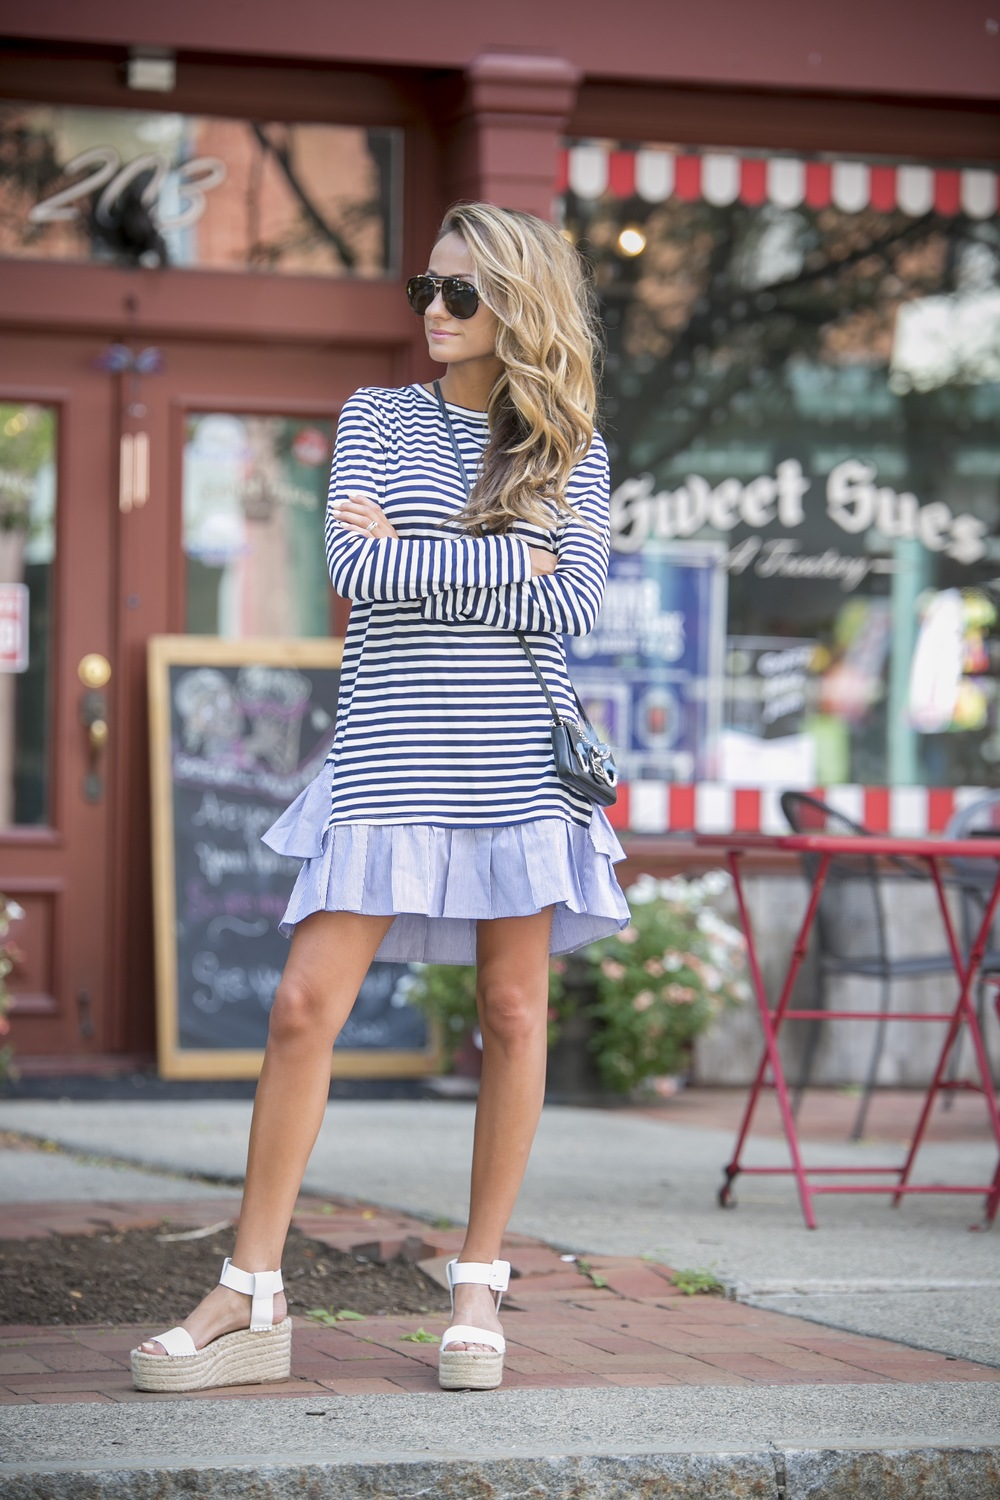 streetstyle for the fourth of July in navy stripes